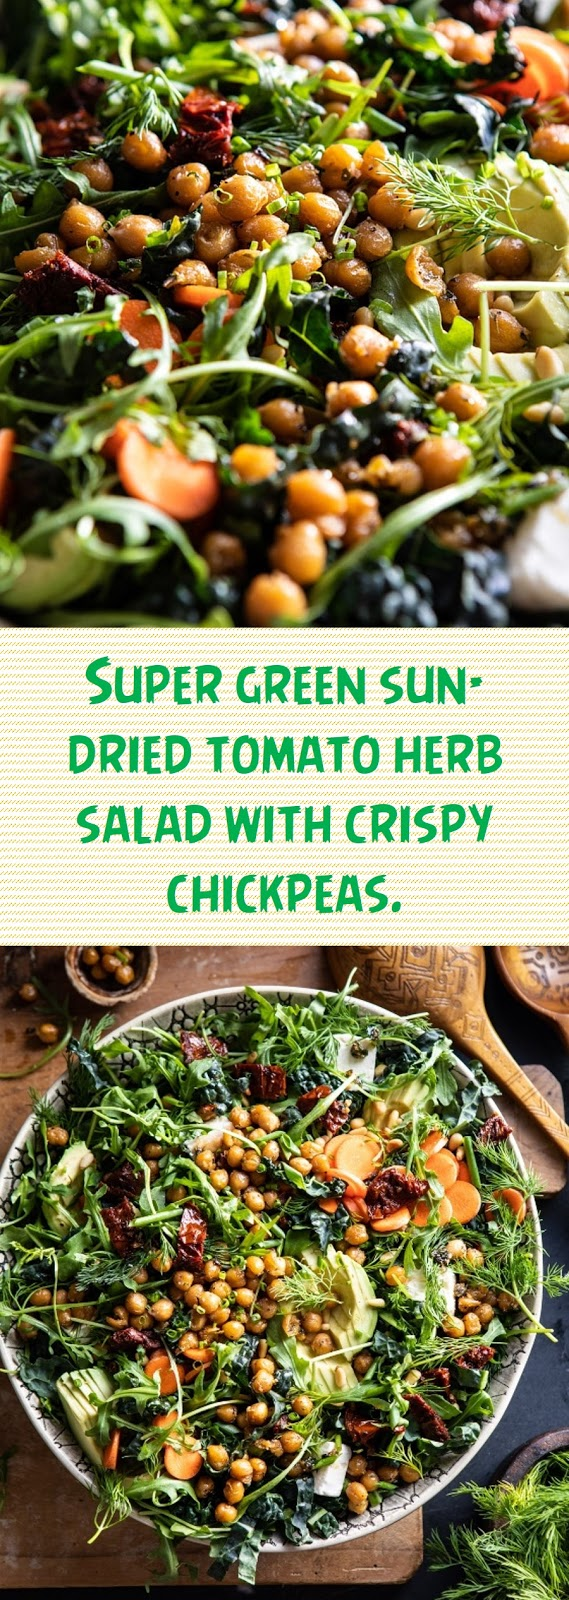 Super green sun-dried tomato herb salad with crispy chickpeas.